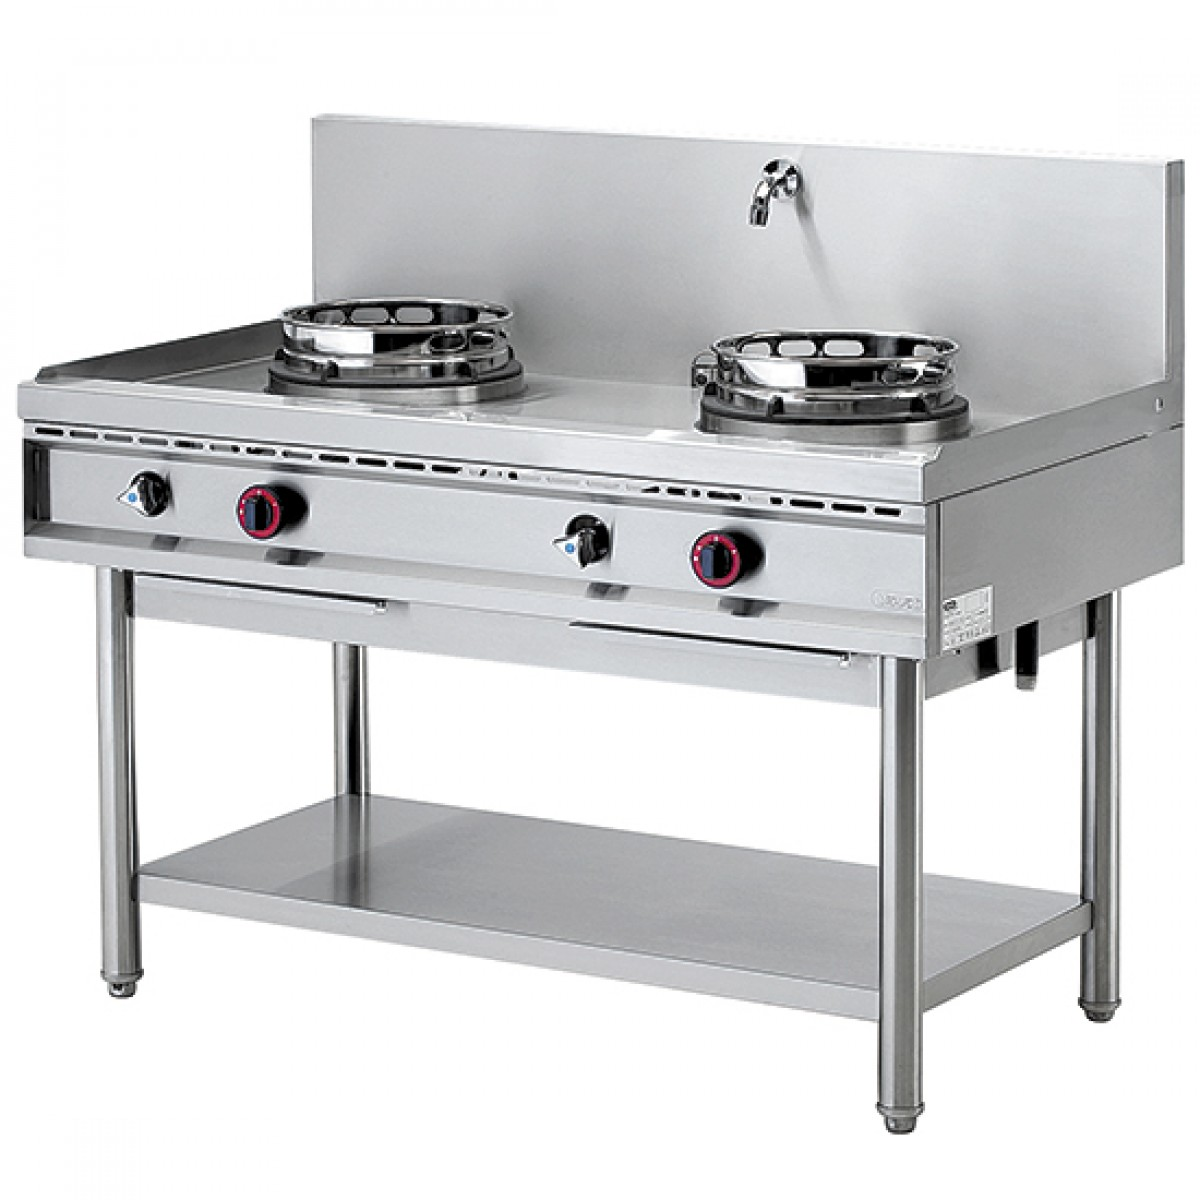 Cucina Wok Gas Wok Hob With Shelf 2 Burners 1 Water Tap